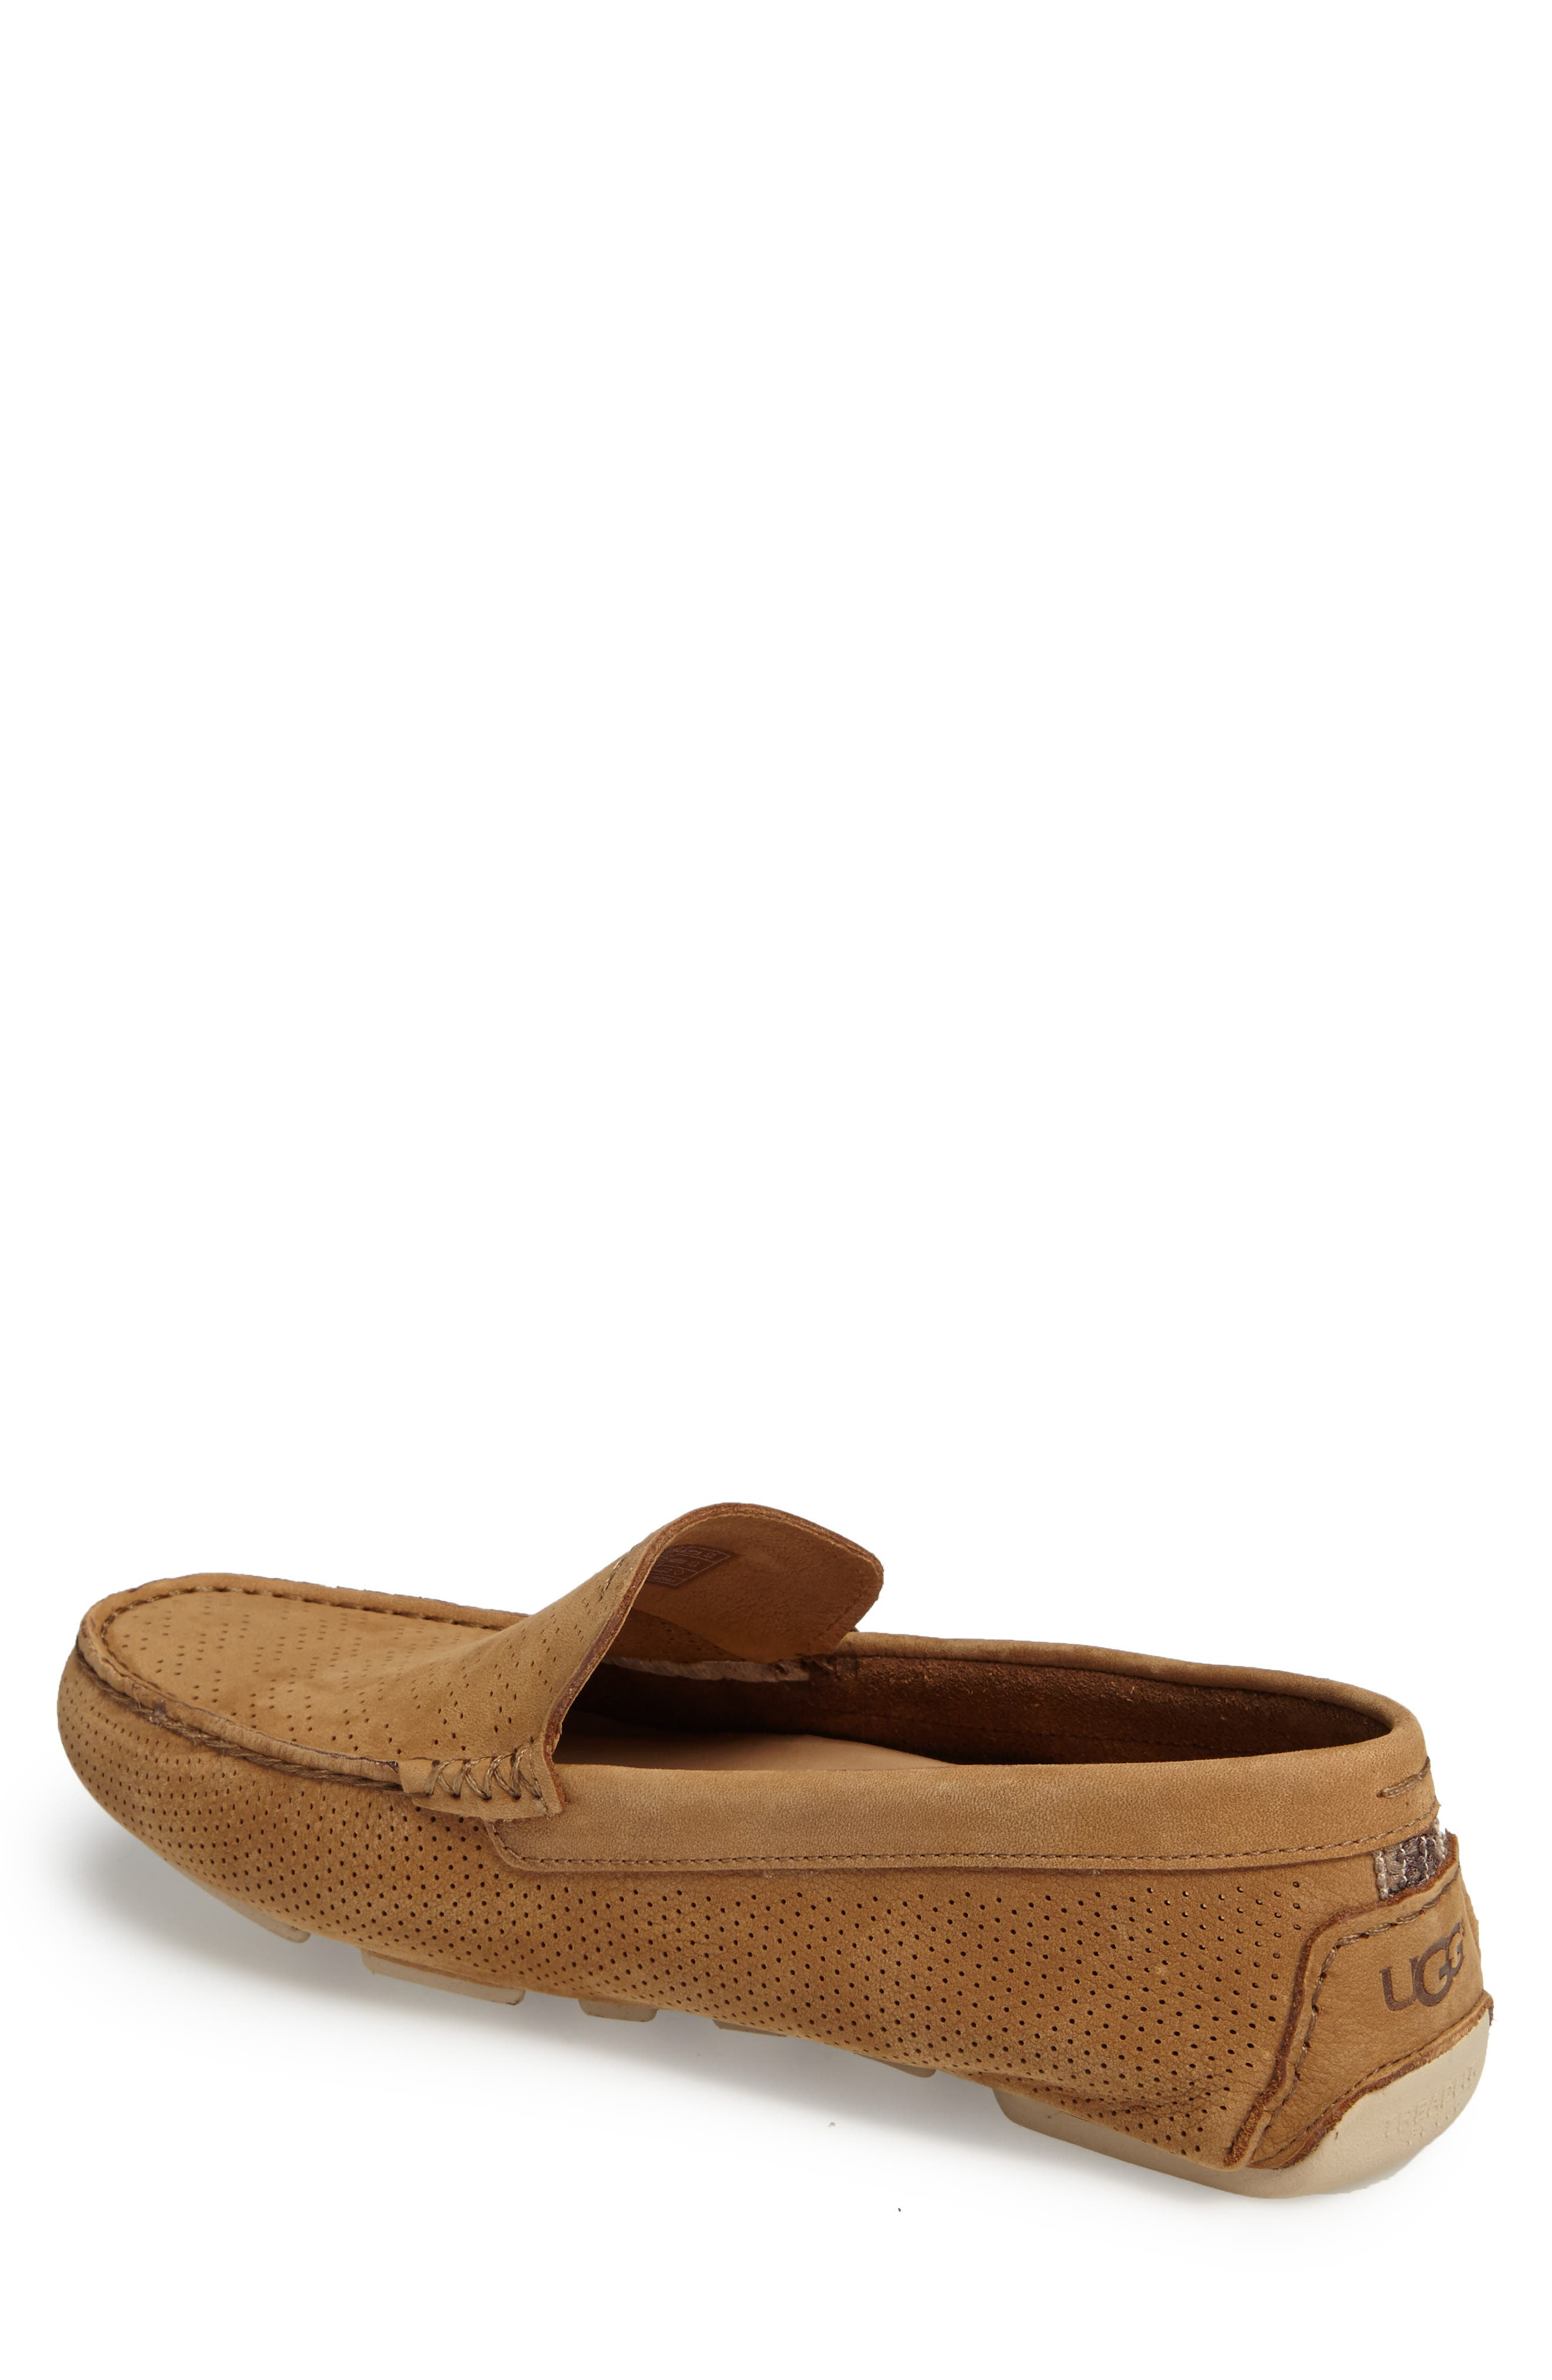 UGG<SUP>®</SUP>, Henrick Twinsole<sup>®</sup> Driving Shoe, Alternate thumbnail 2, color, TAMARIND